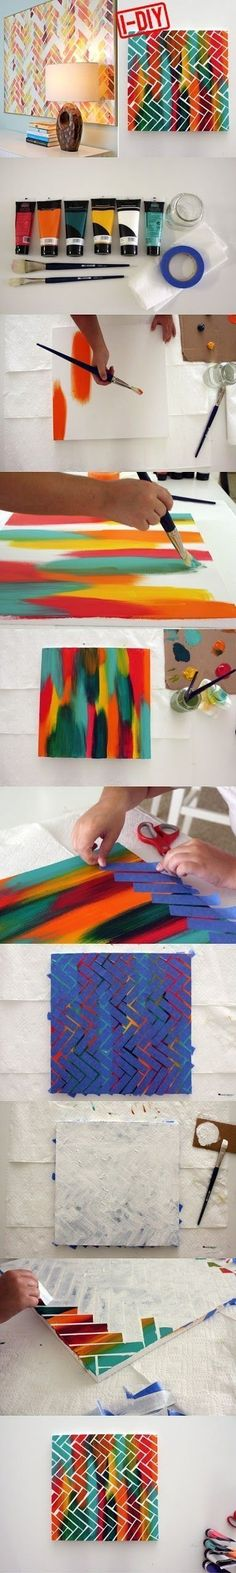 Create an awesome DIY mural.